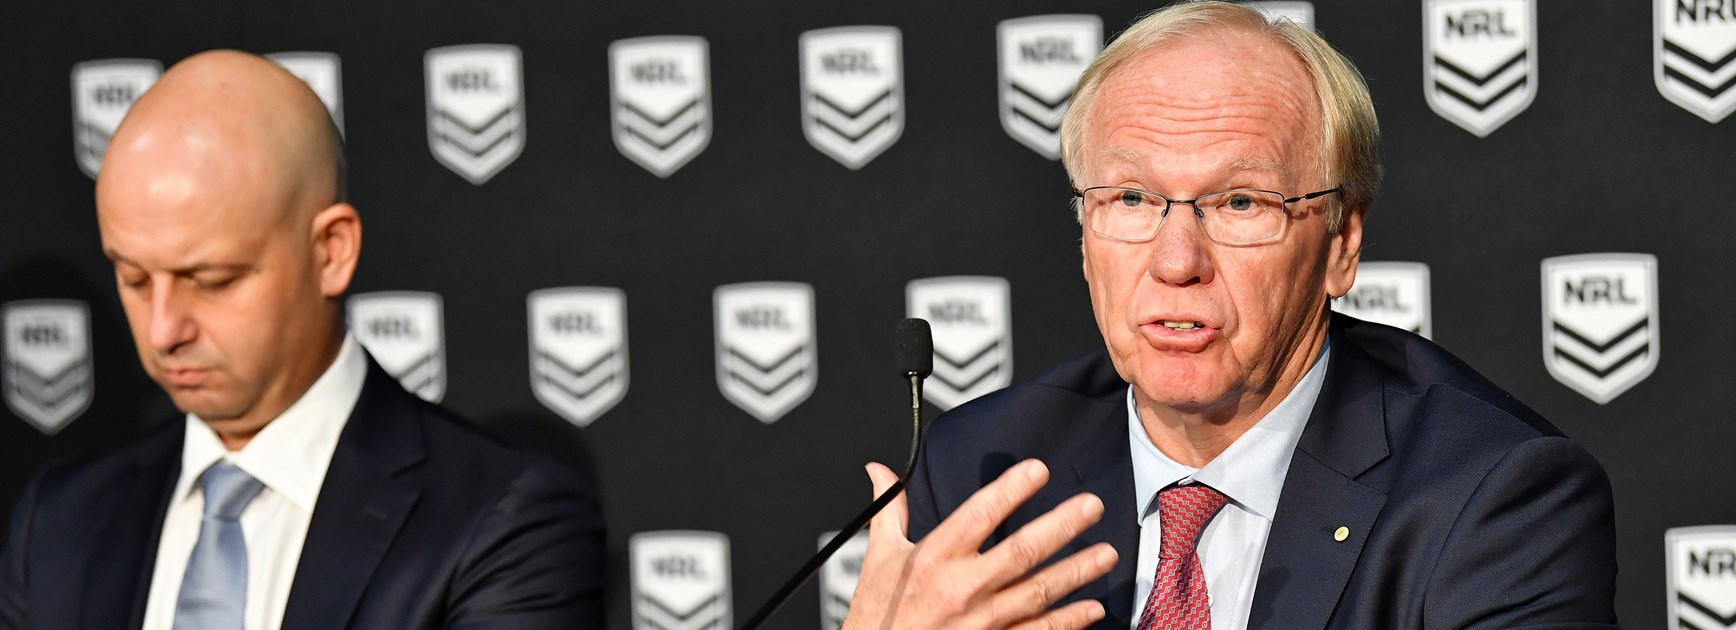 ARLC announces 'no-fault stand down policy' for players facing serious charges